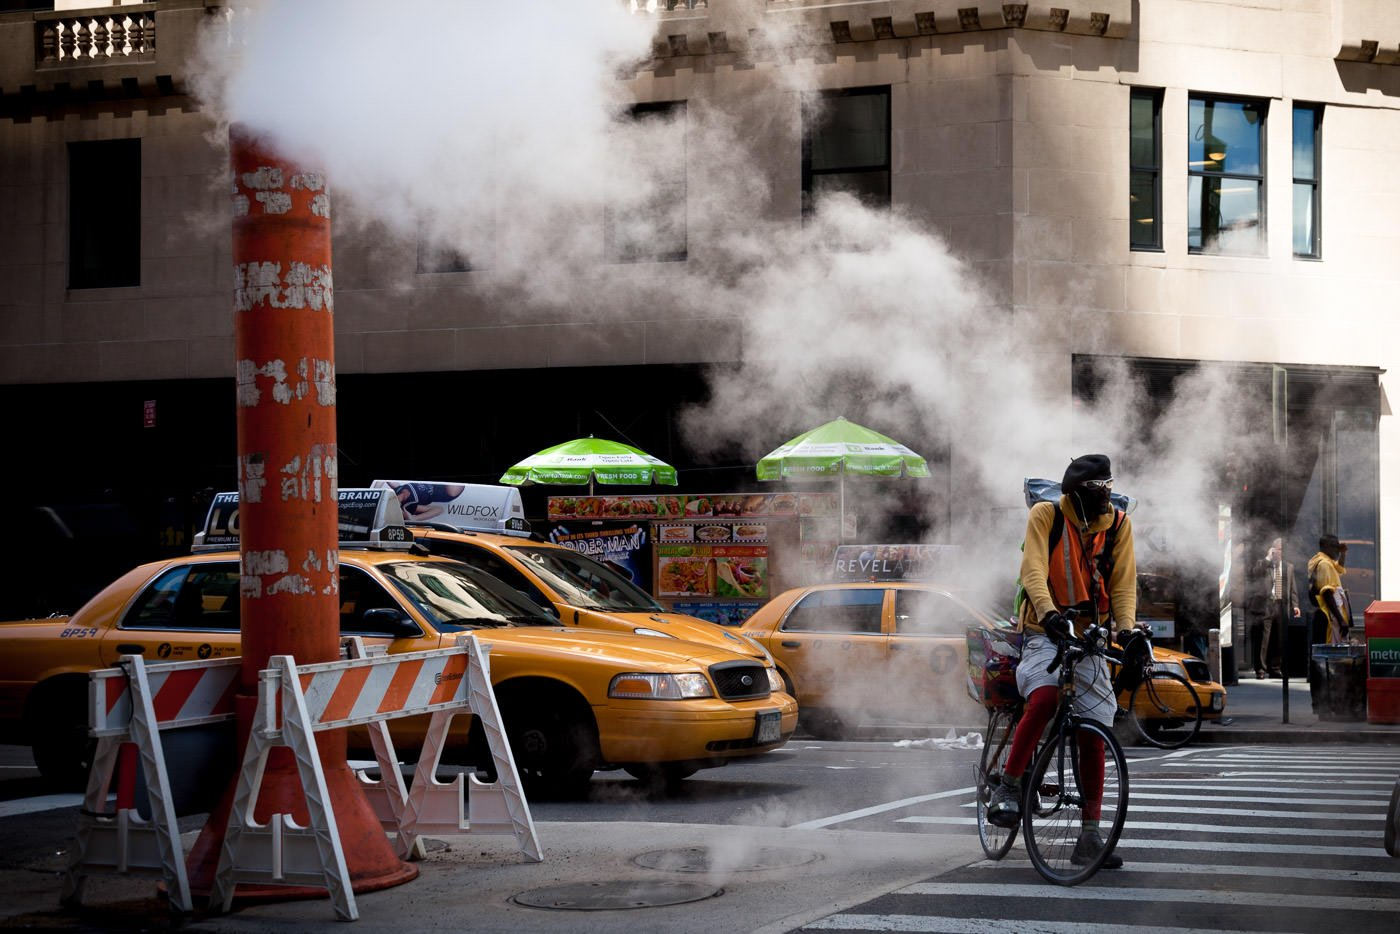 Street photography: NYC bike messenger in street with steampipe